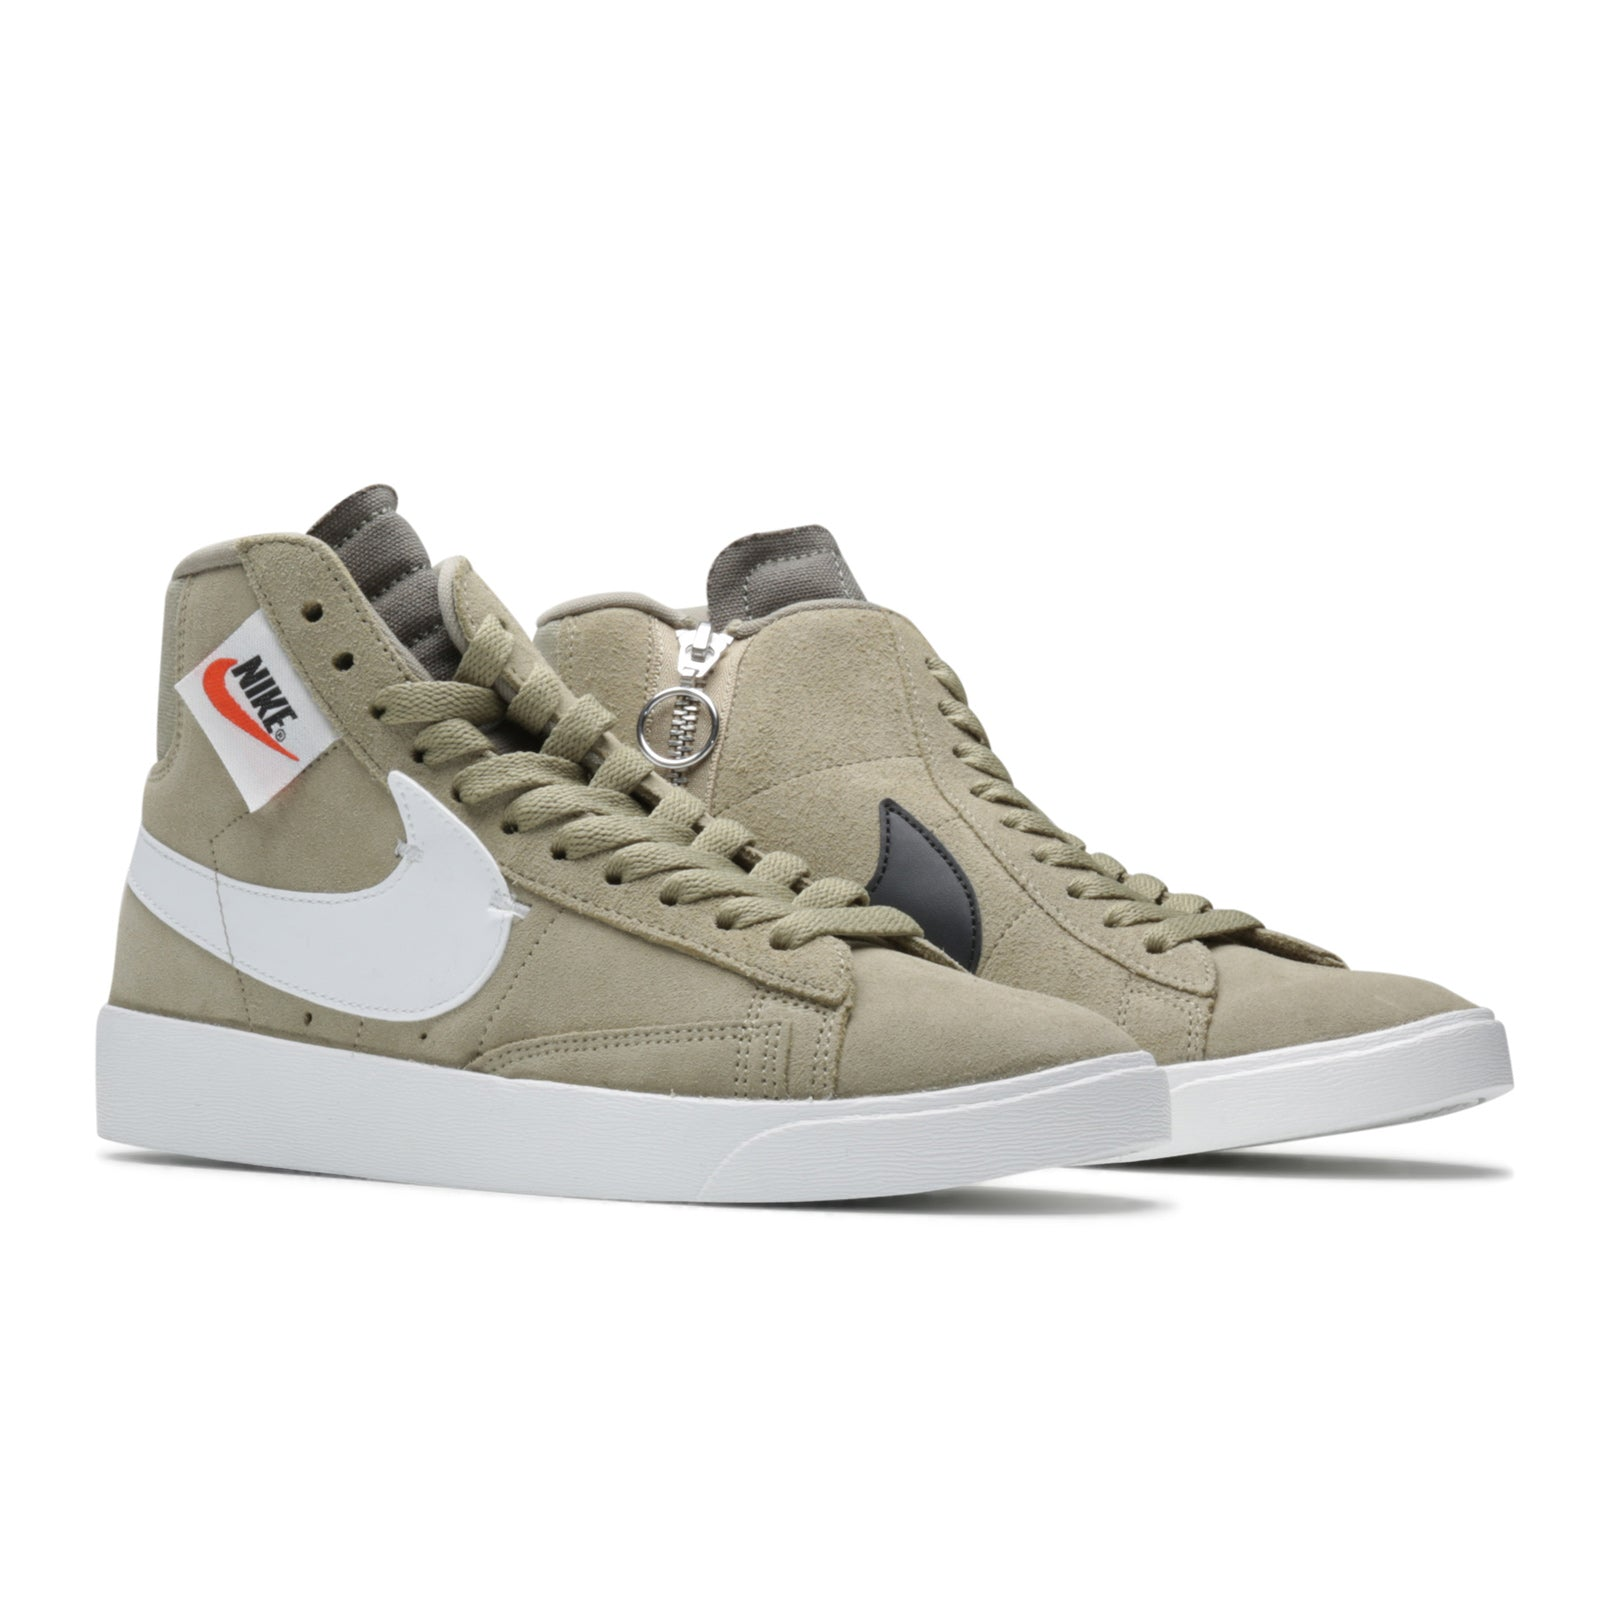 0290370880258 Women s Nike Blazer Mid Rebel BLACK SUMMIT WHITE-OIL GREY-OIL GREY  BQ4022-001. Retail   100